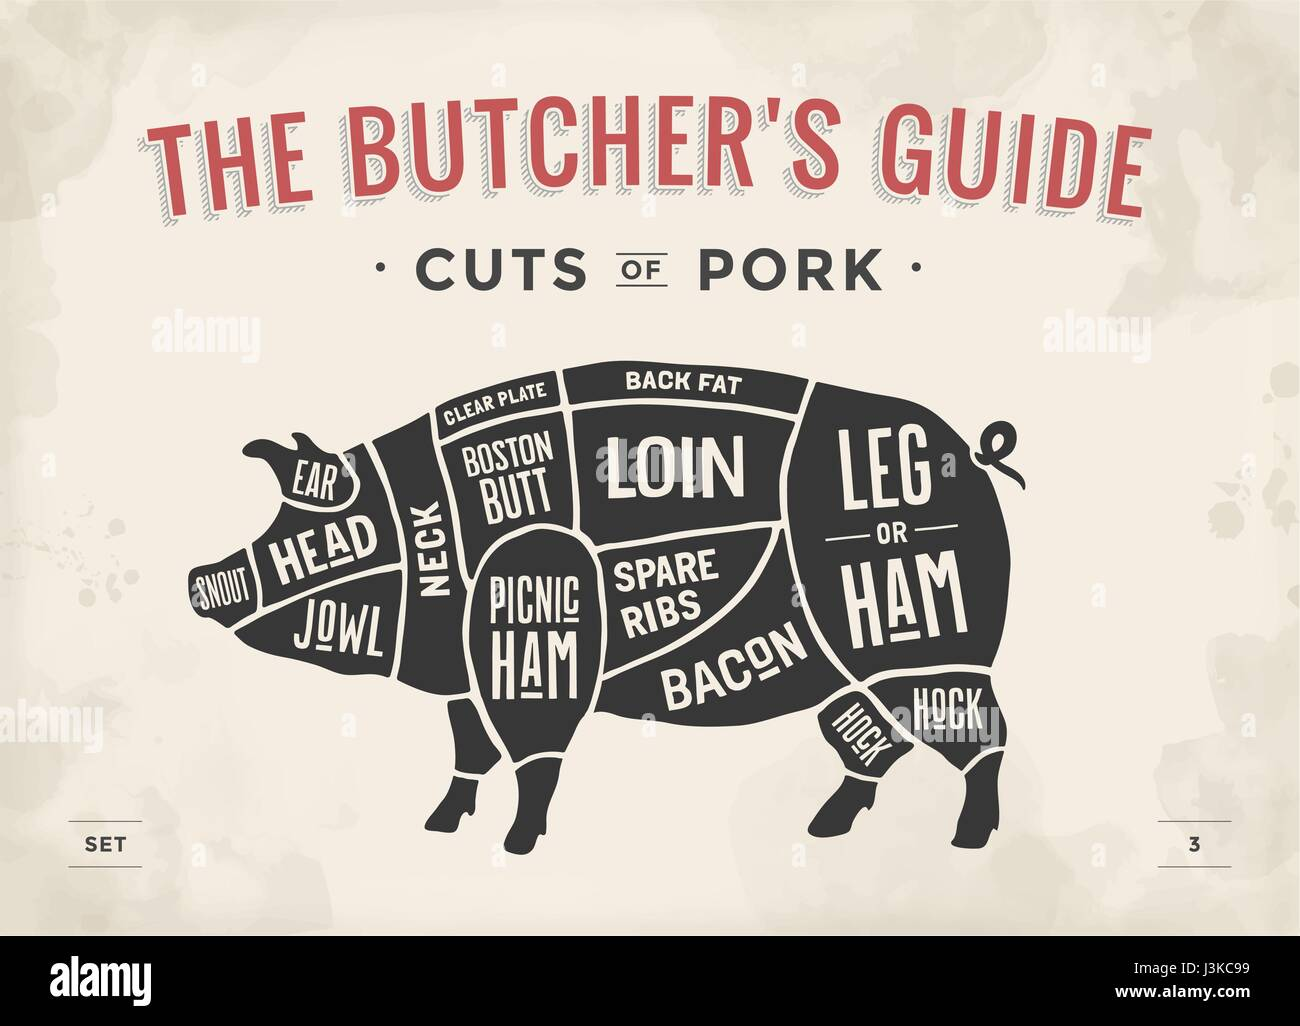 cut of meat set poster butcher diagram scheme and guide pork vintage J3KC99 butcher pig illustration stock photos & butcher pig illustration